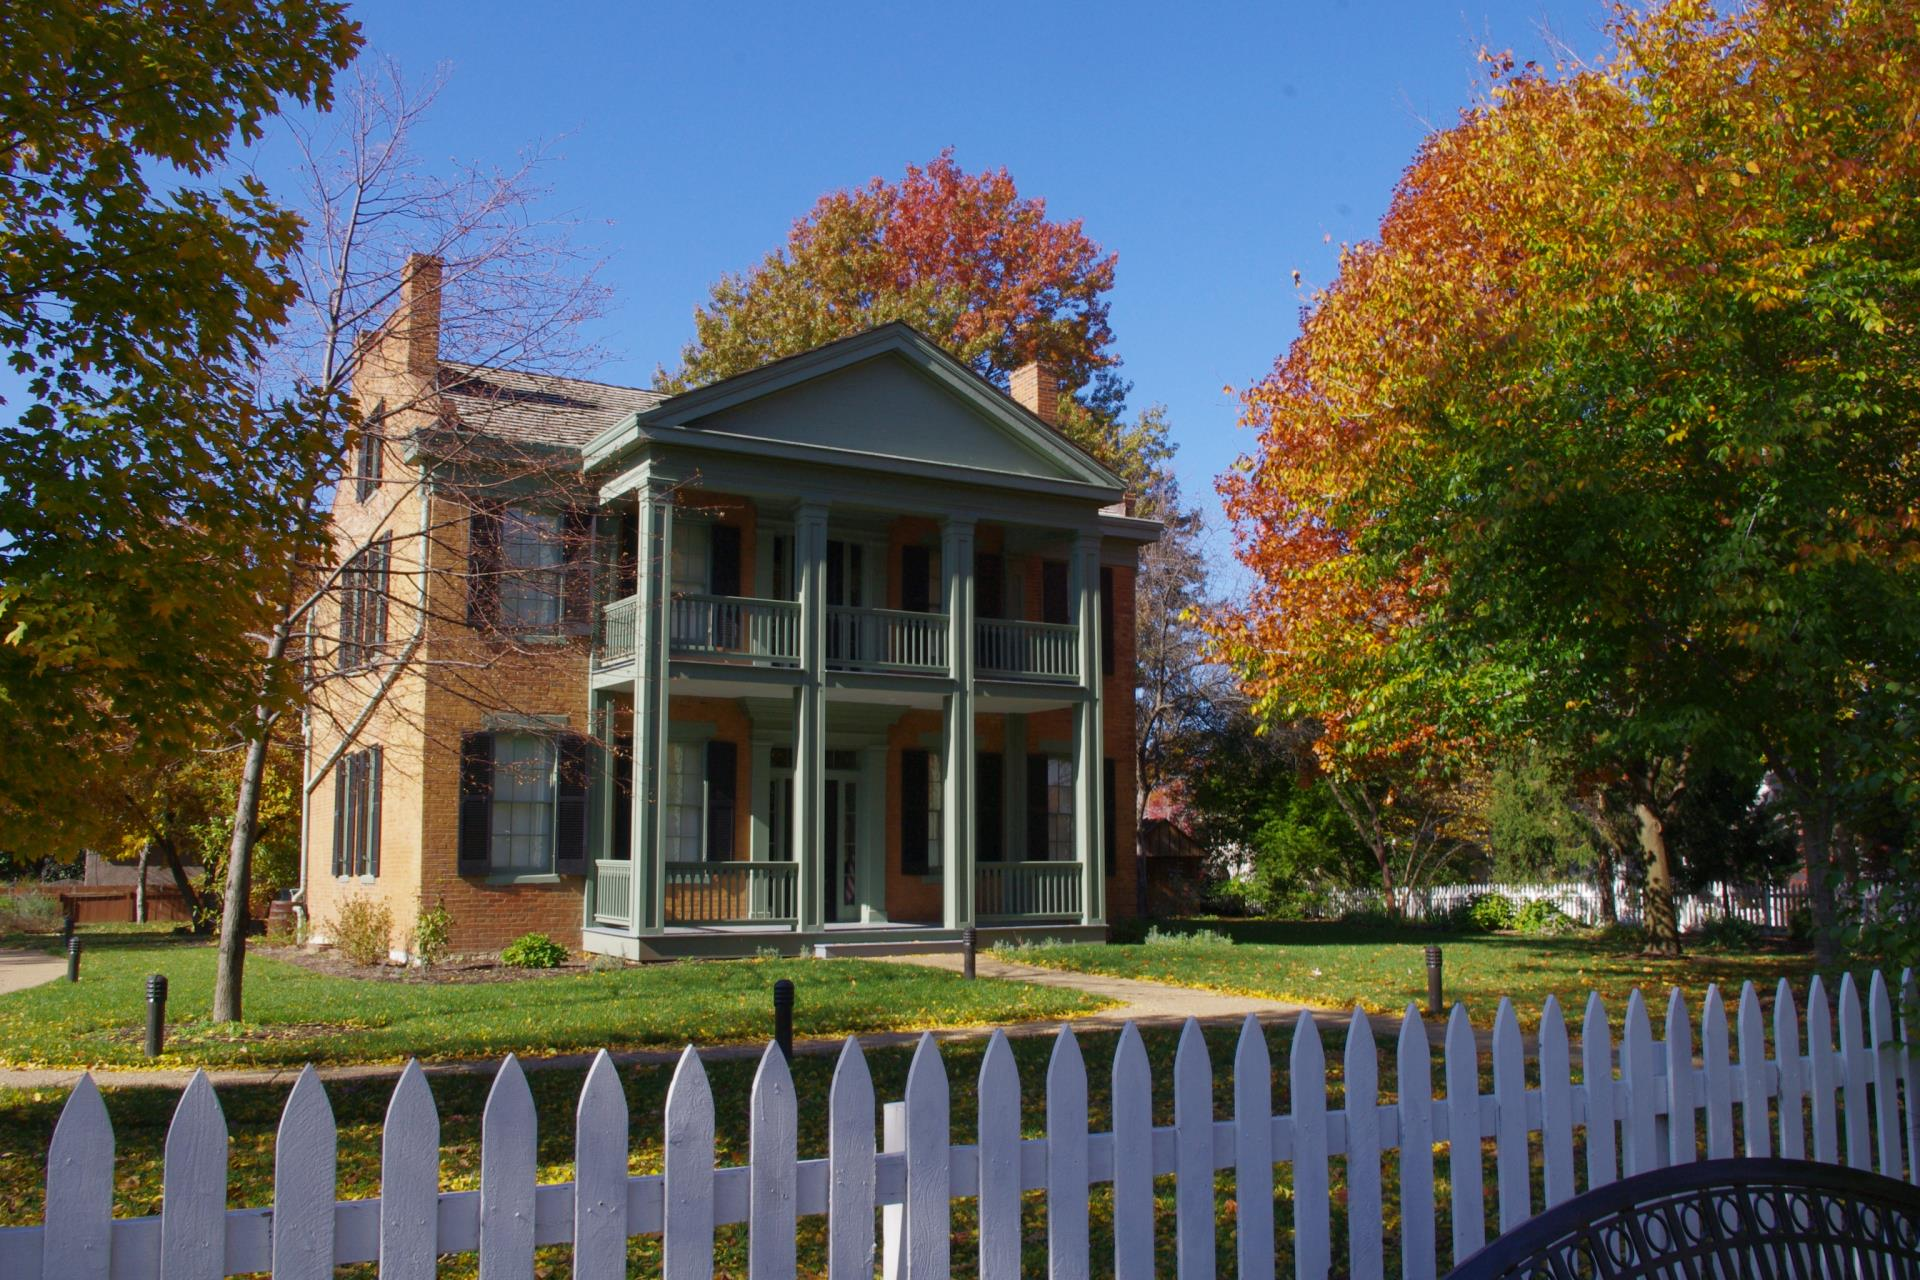 Historic Hanley House in the fall